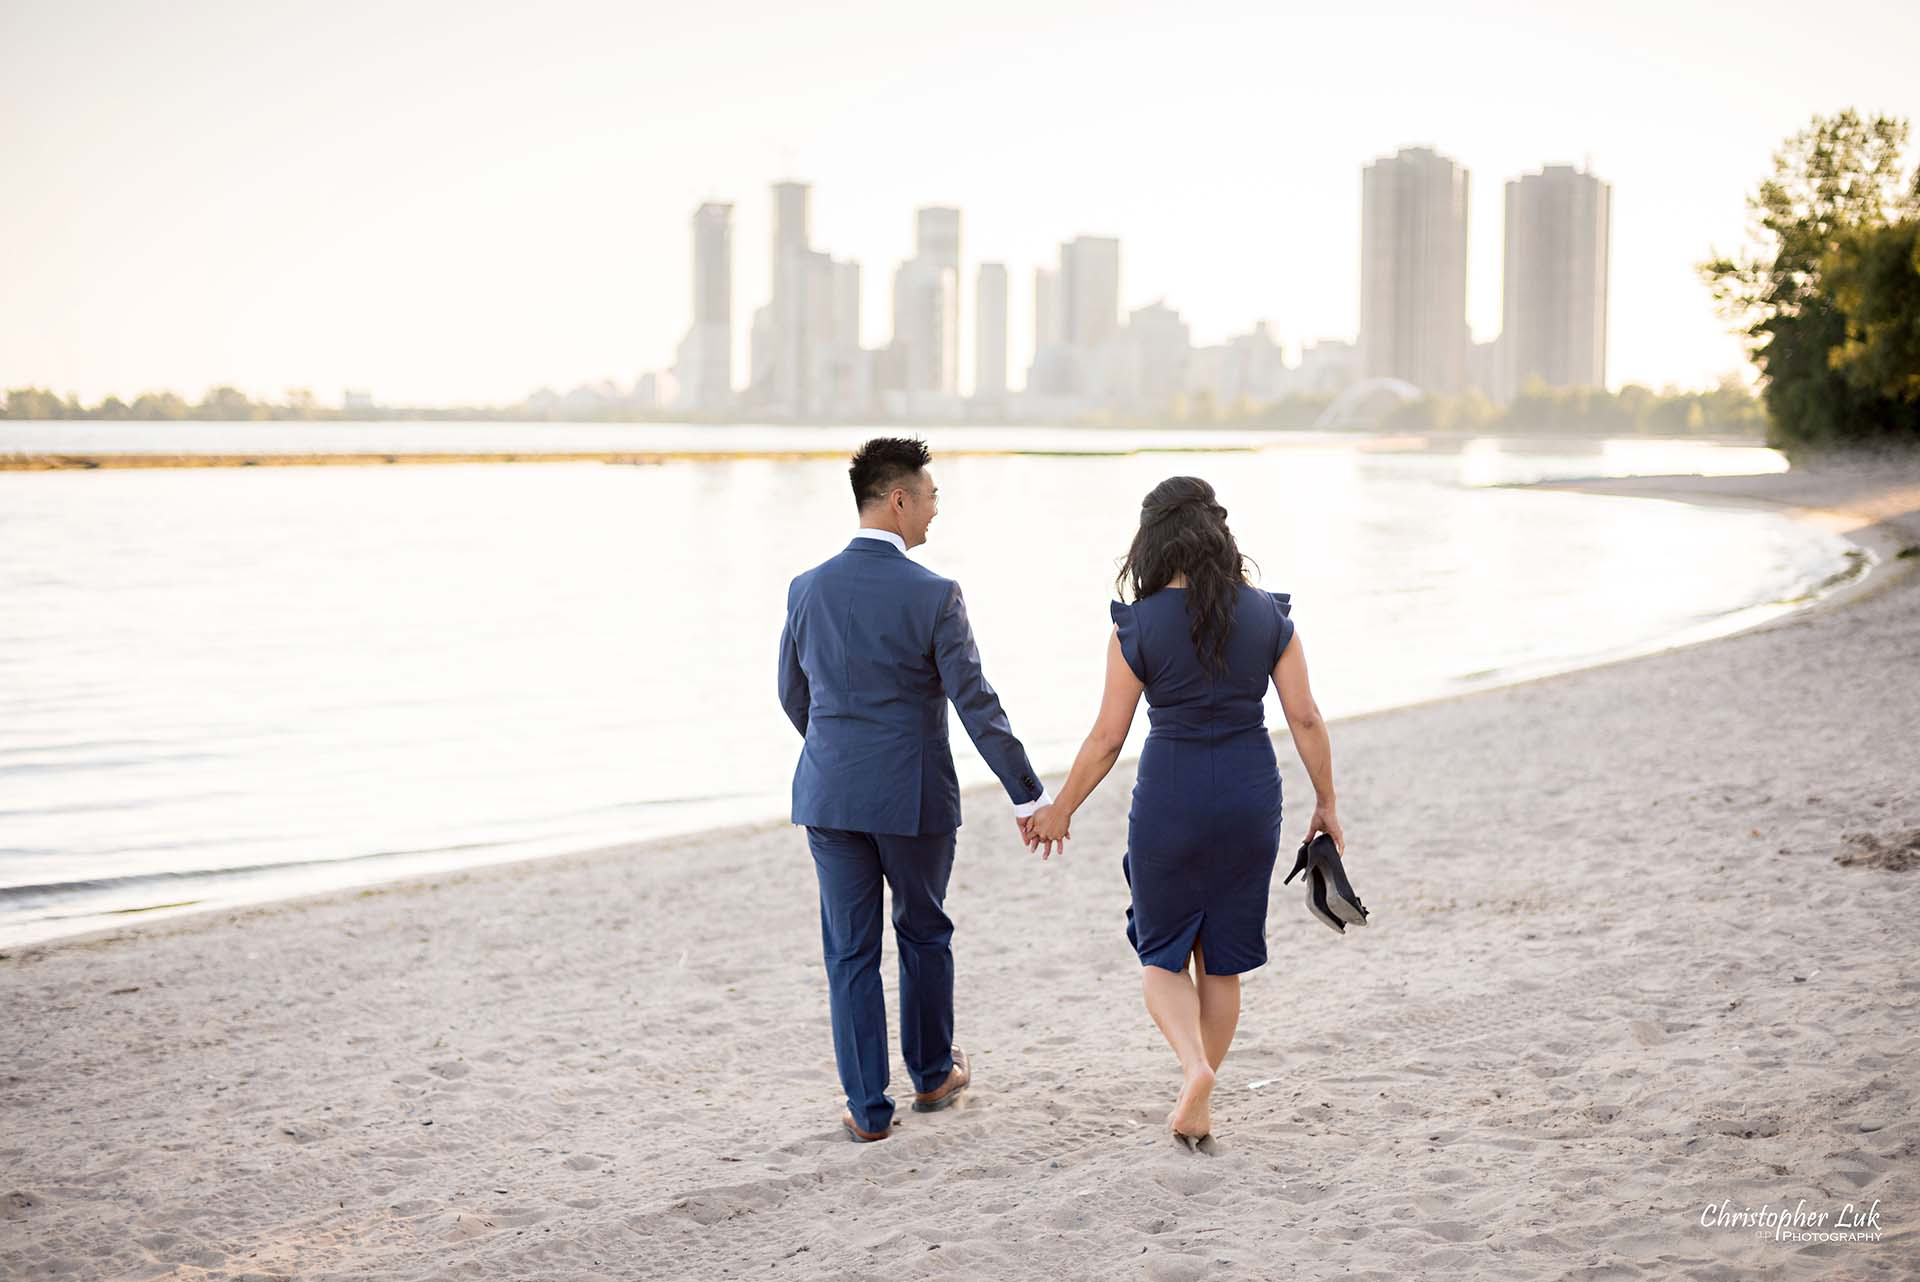 Christopher Luk Toronto Wedding Photographer Engagement Photography Sunnyside Pavilion Park Beach Boardwalk